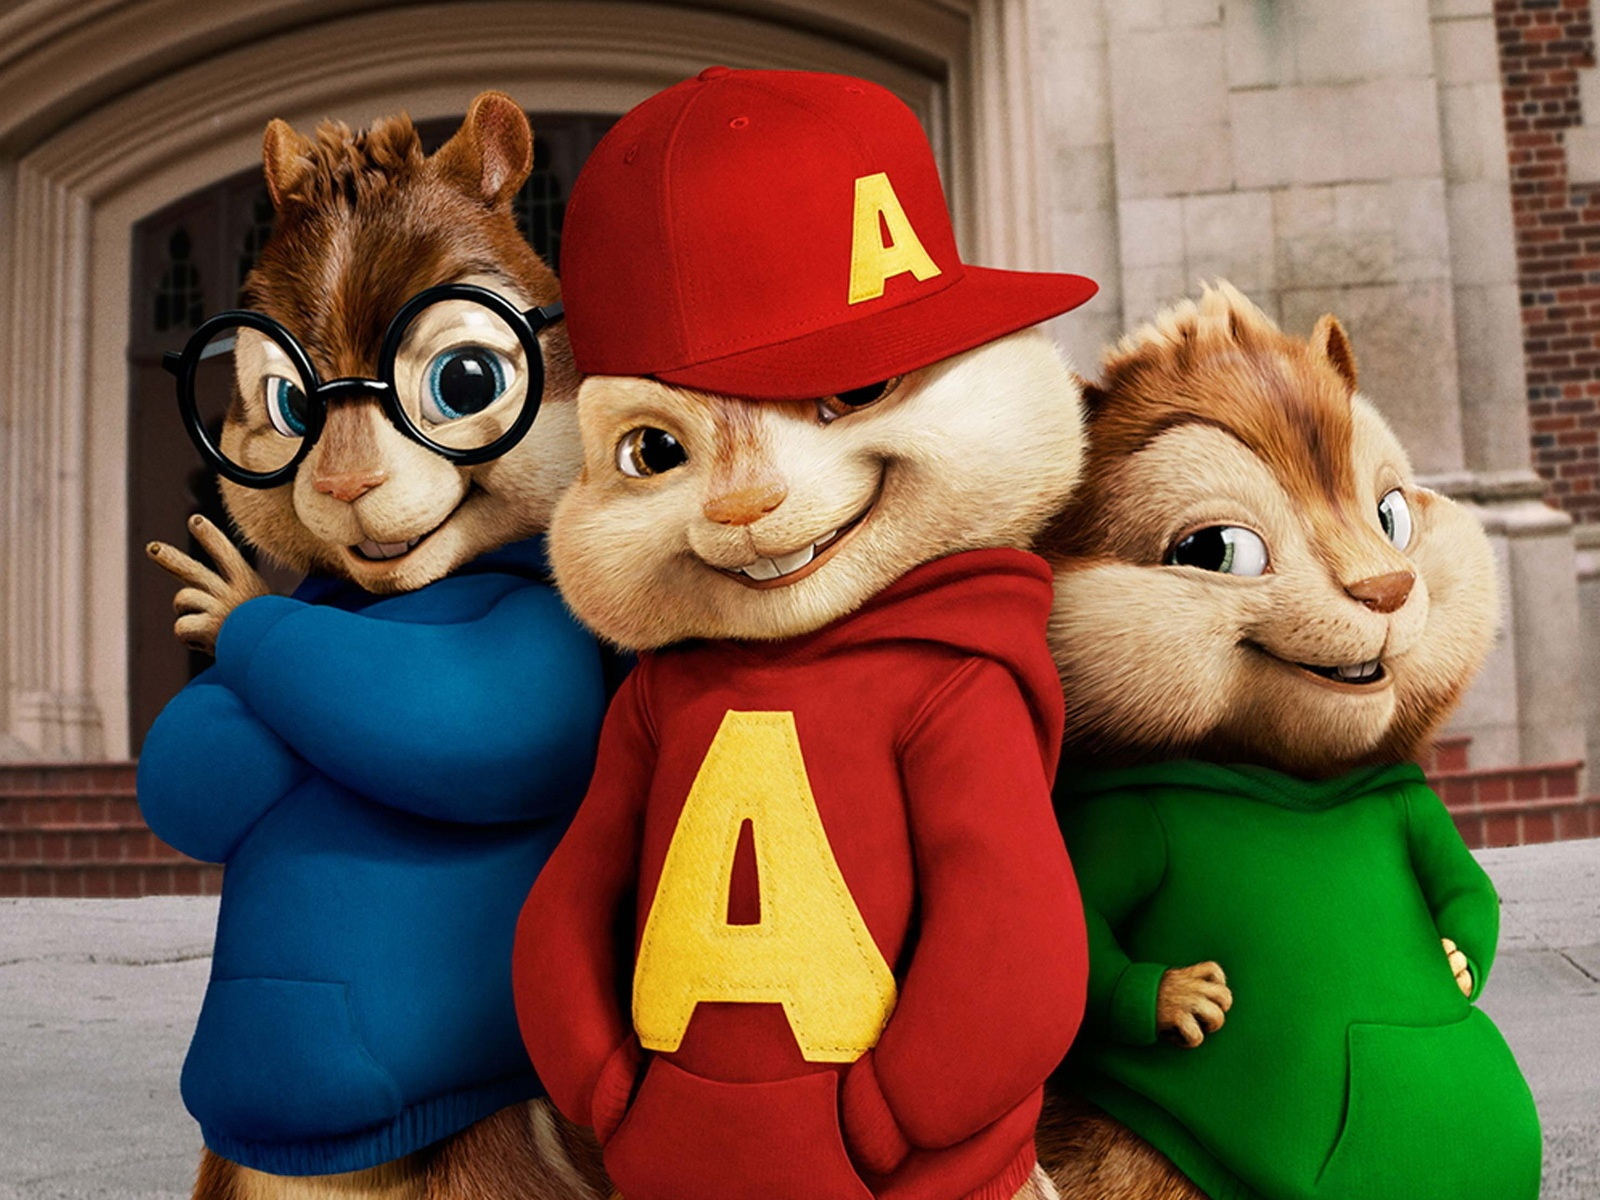 Wallpaper Alvin And The Chipmunks Movie Wide 1920x1200 Hd Picture